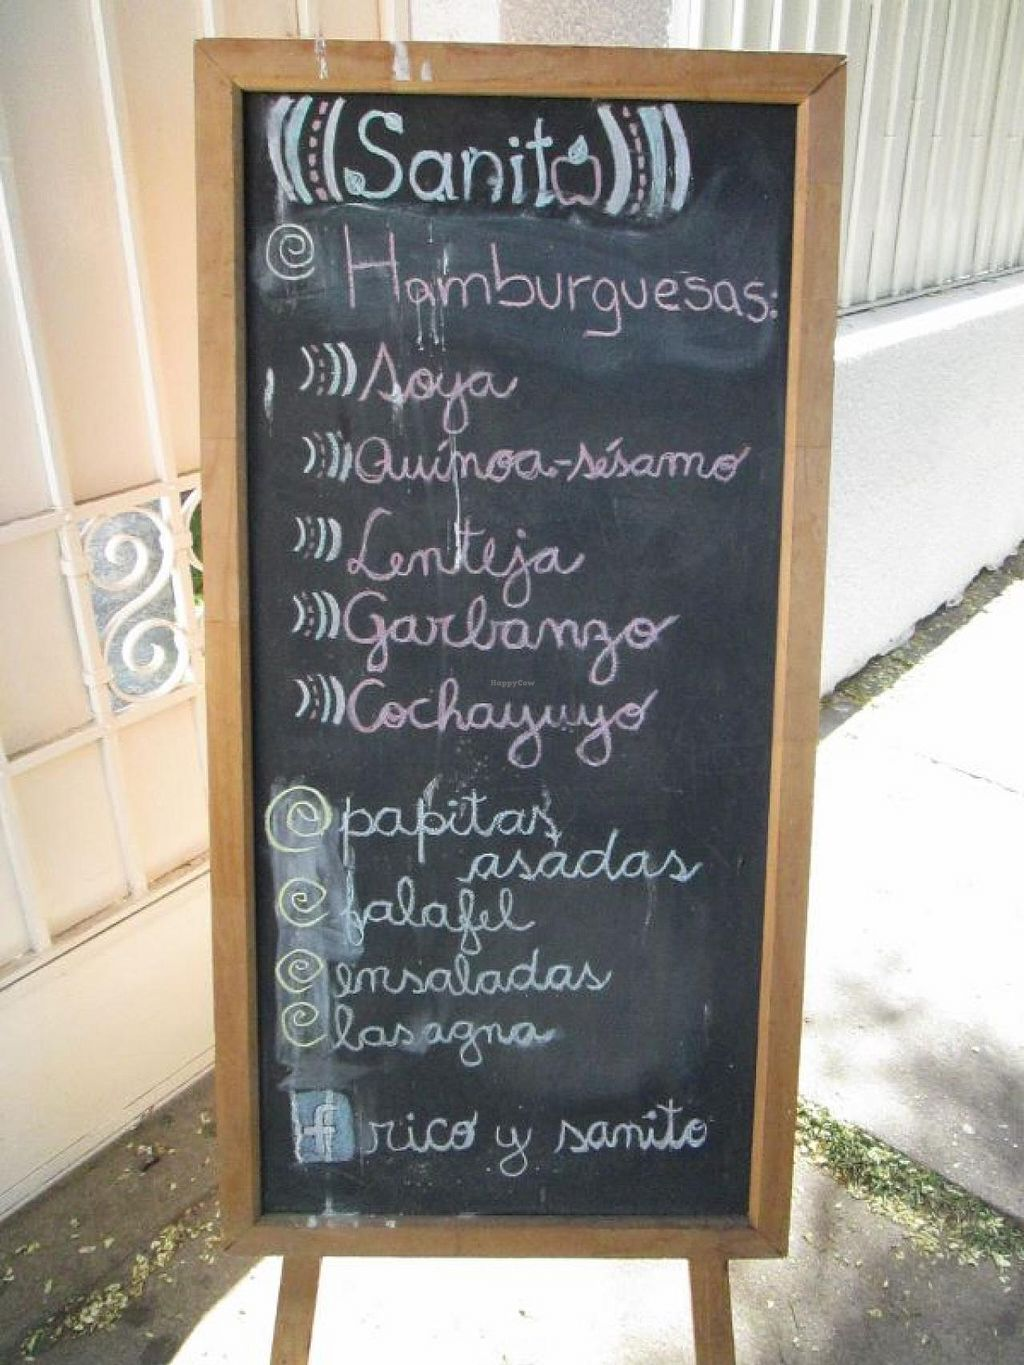 """Photo of CLOSED: Sanito  by <a href=""""/members/profile/choogirl"""">choogirl</a> <br/>Extensive burger menu <br/> February 9, 2014  - <a href='/contact/abuse/image/45239/64046'>Report</a>"""